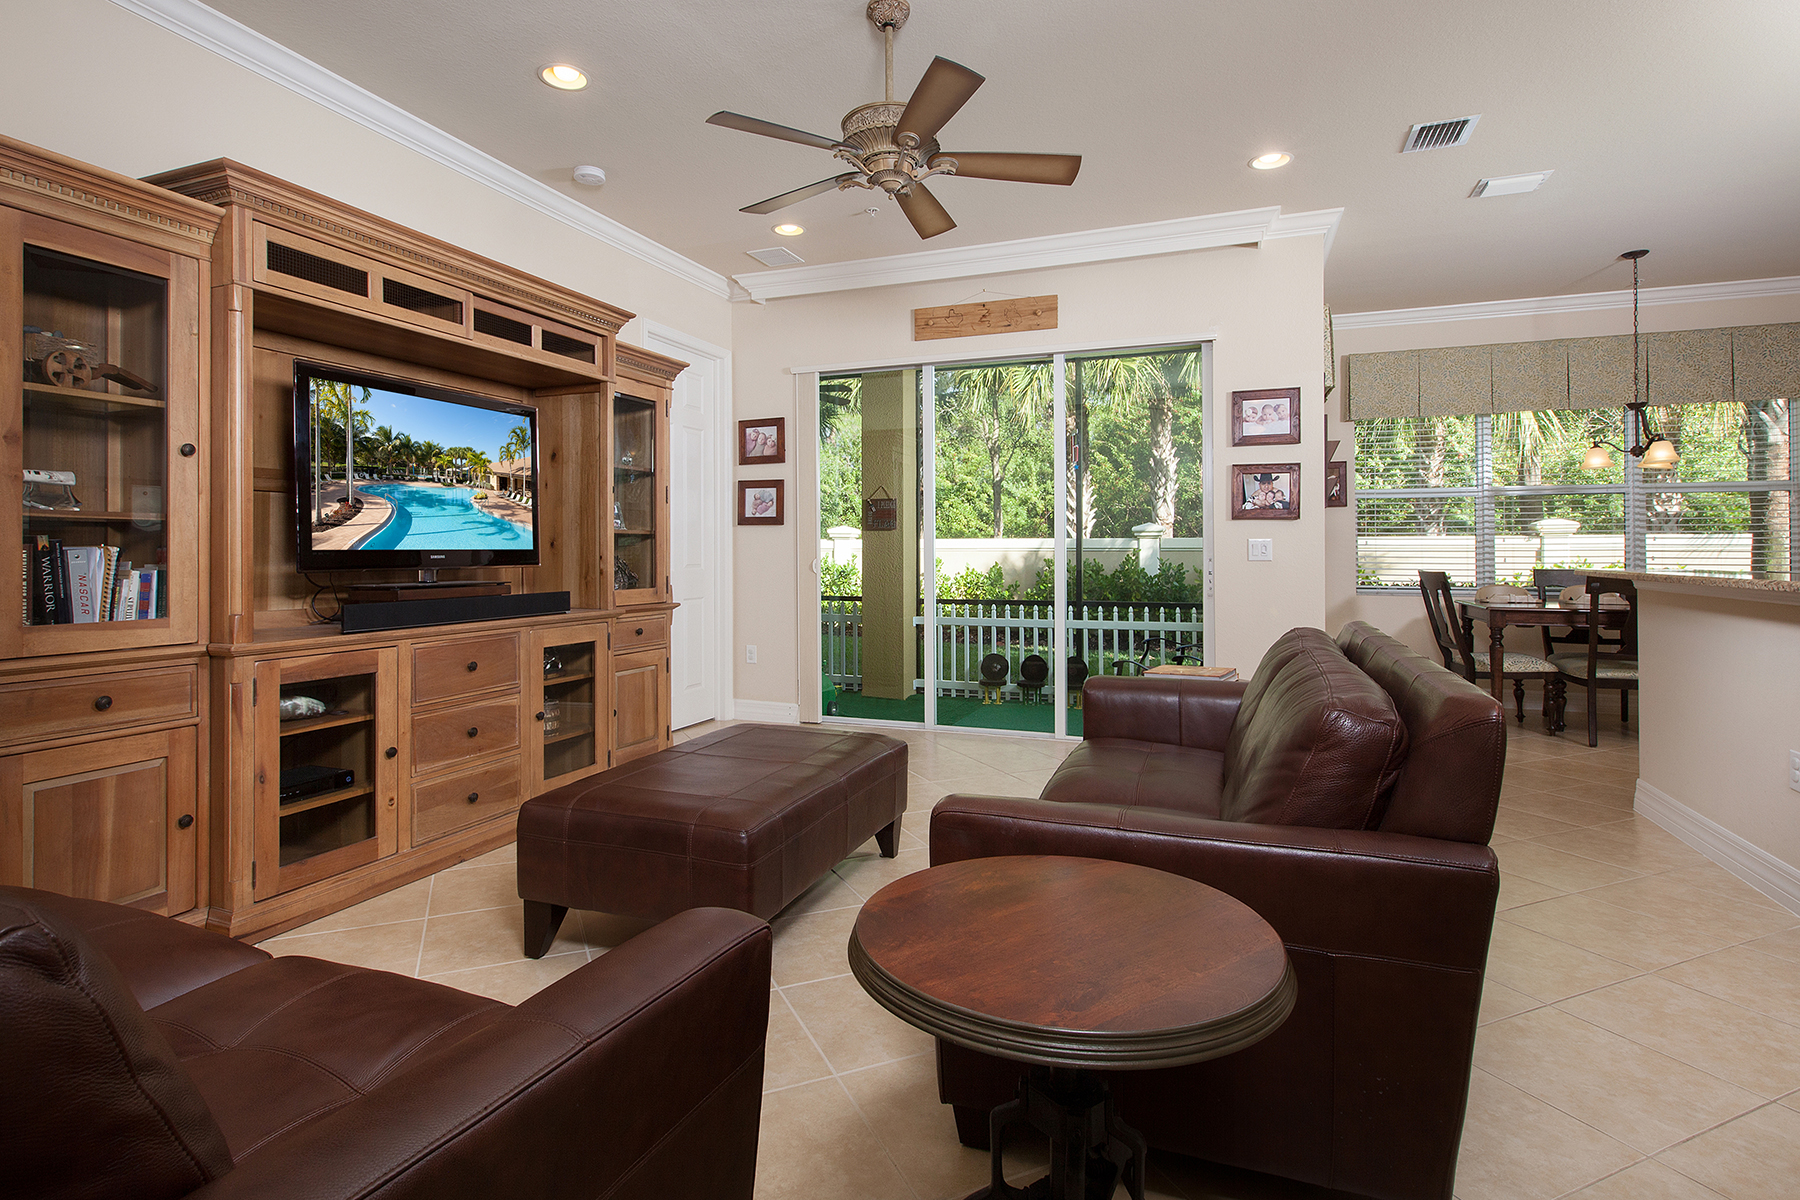 Condominium for Sale at MARBELLA LAKES 6526 Monterey Pt 104 Naples, Florida, 34105 United States